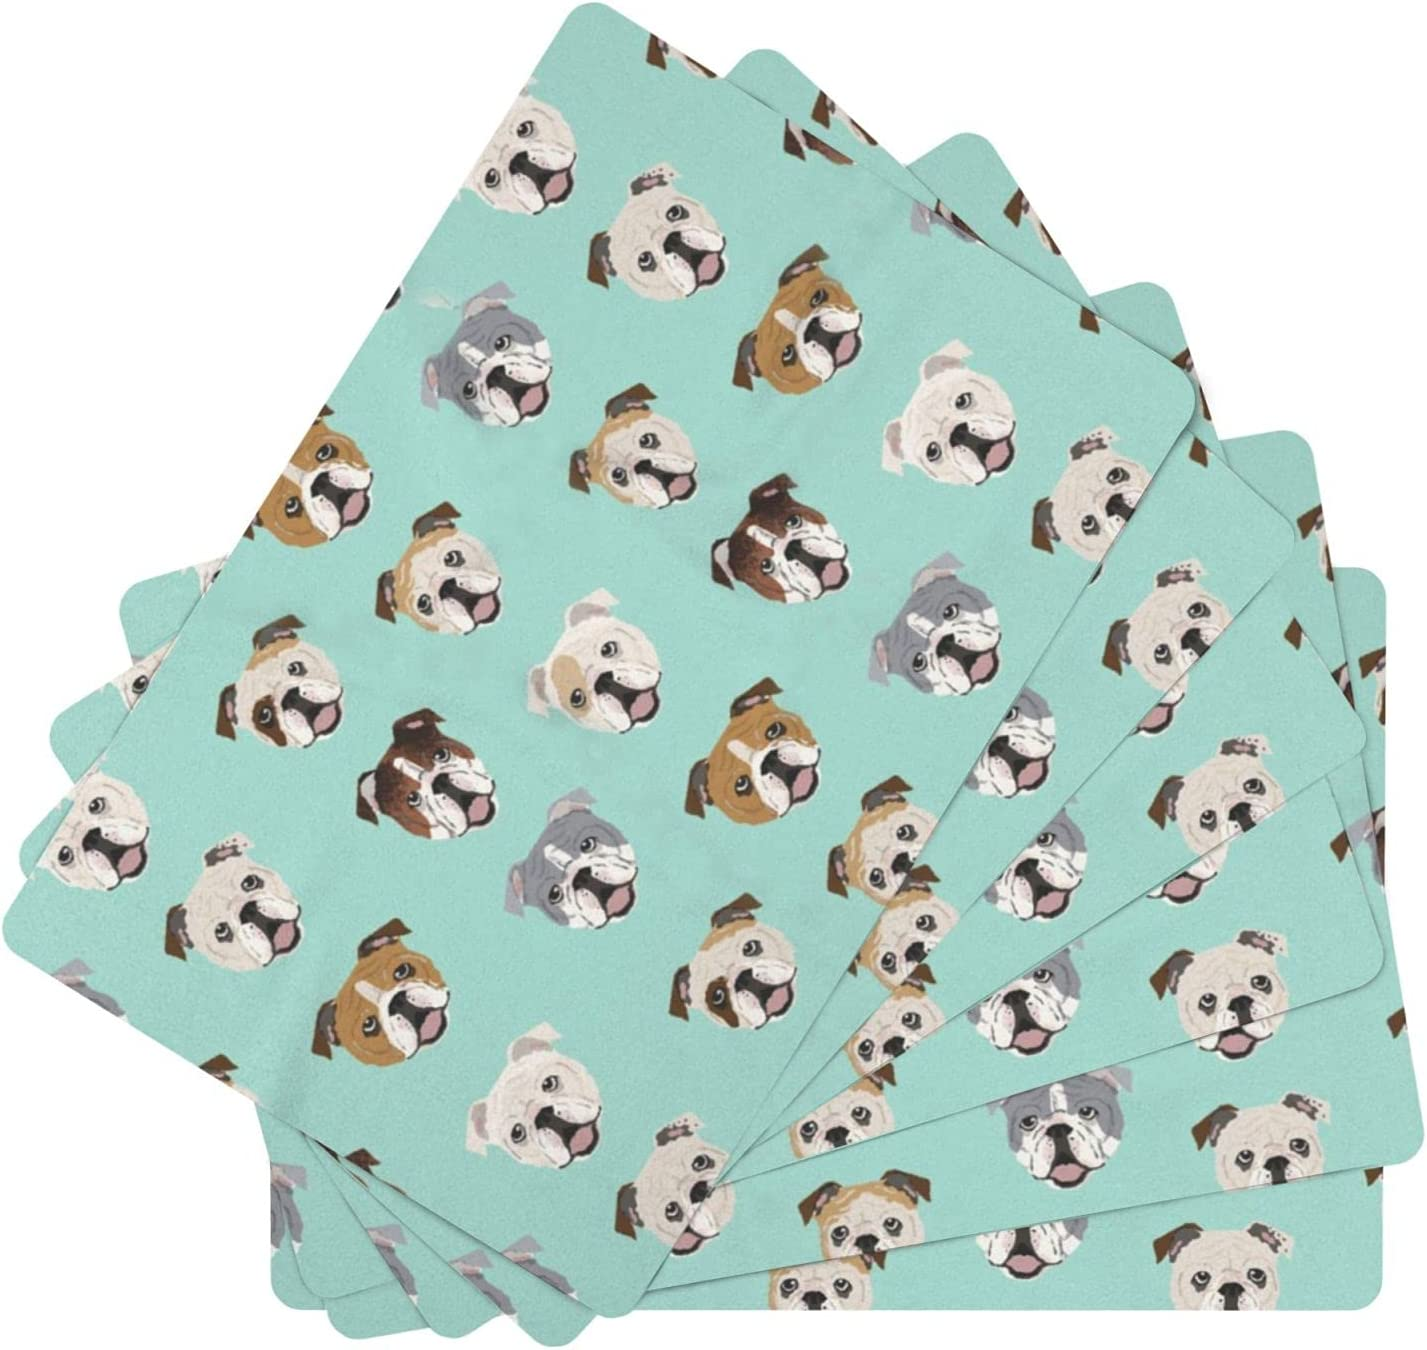 English In stock Bulldog Leather Place Mats for of 67% OFF of fixed price Table 6 Was Dining Set